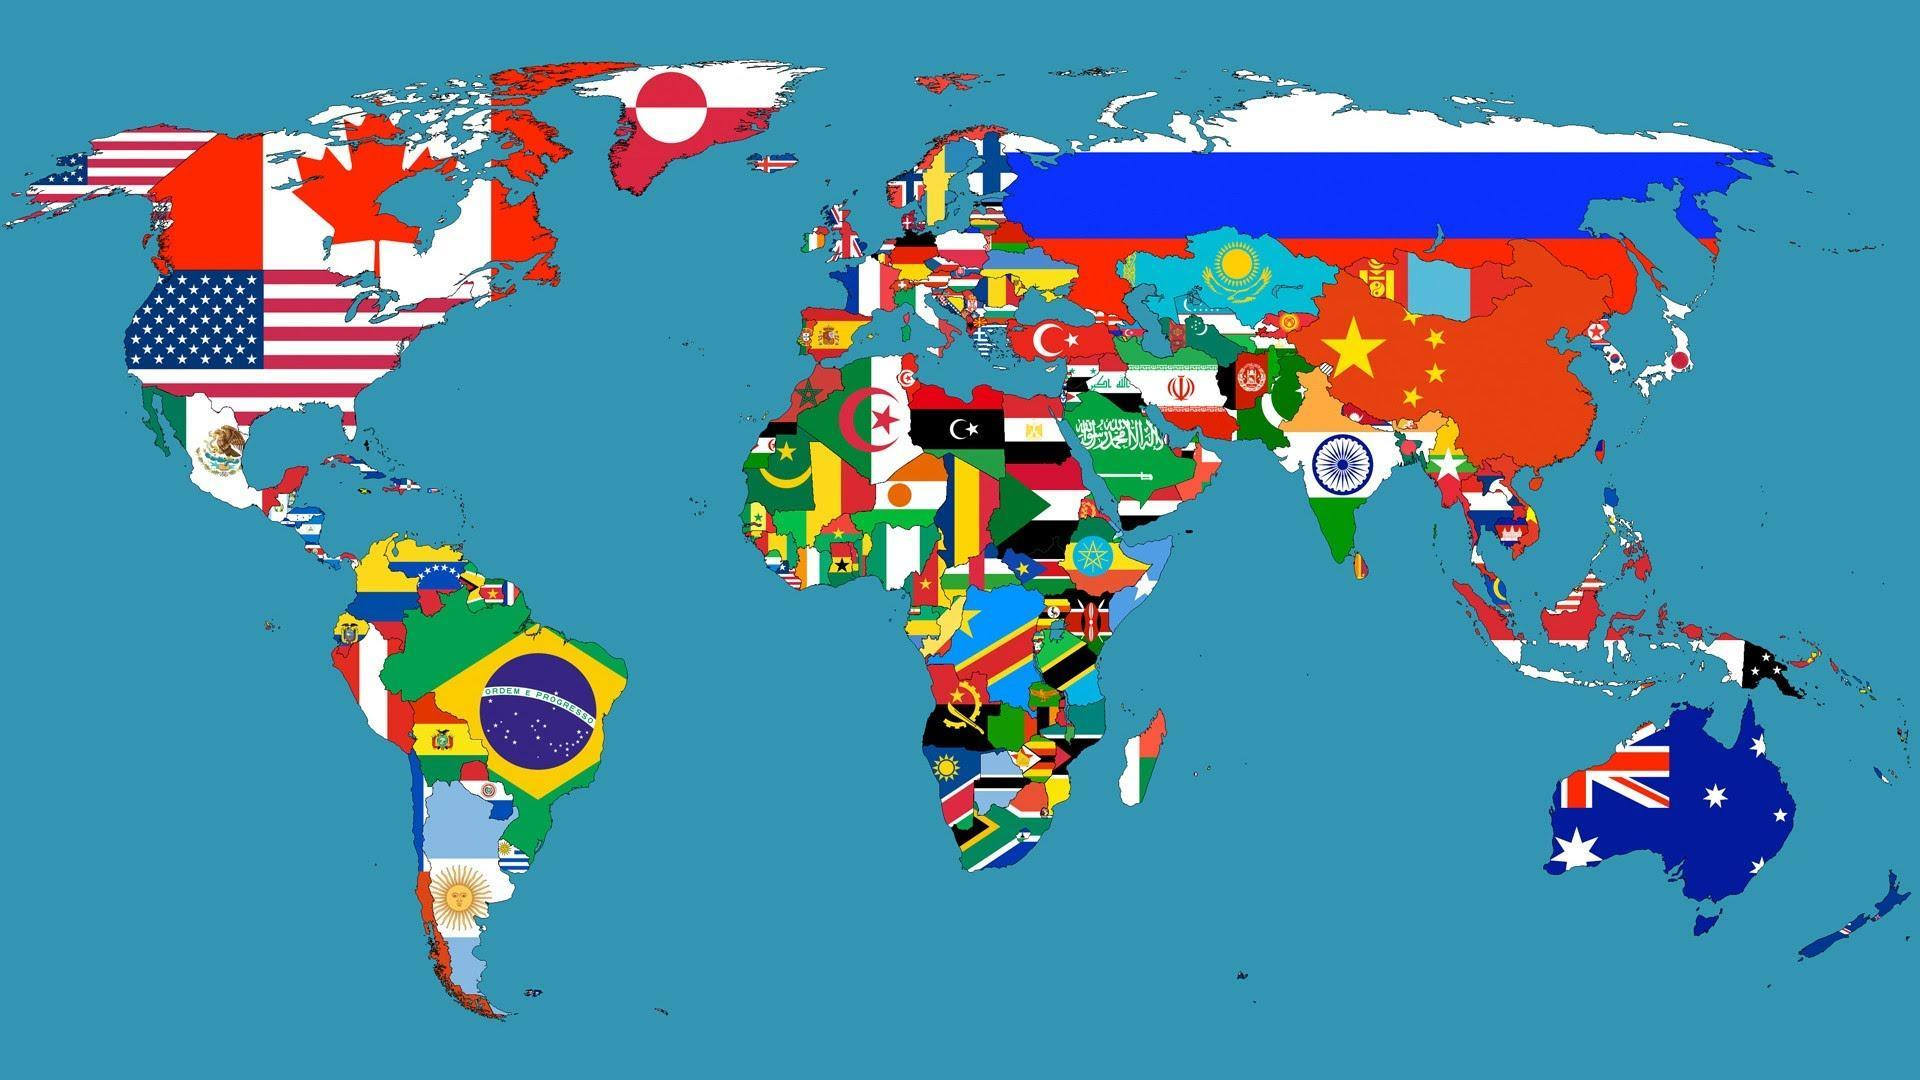 How many countries are there in the world? 2016